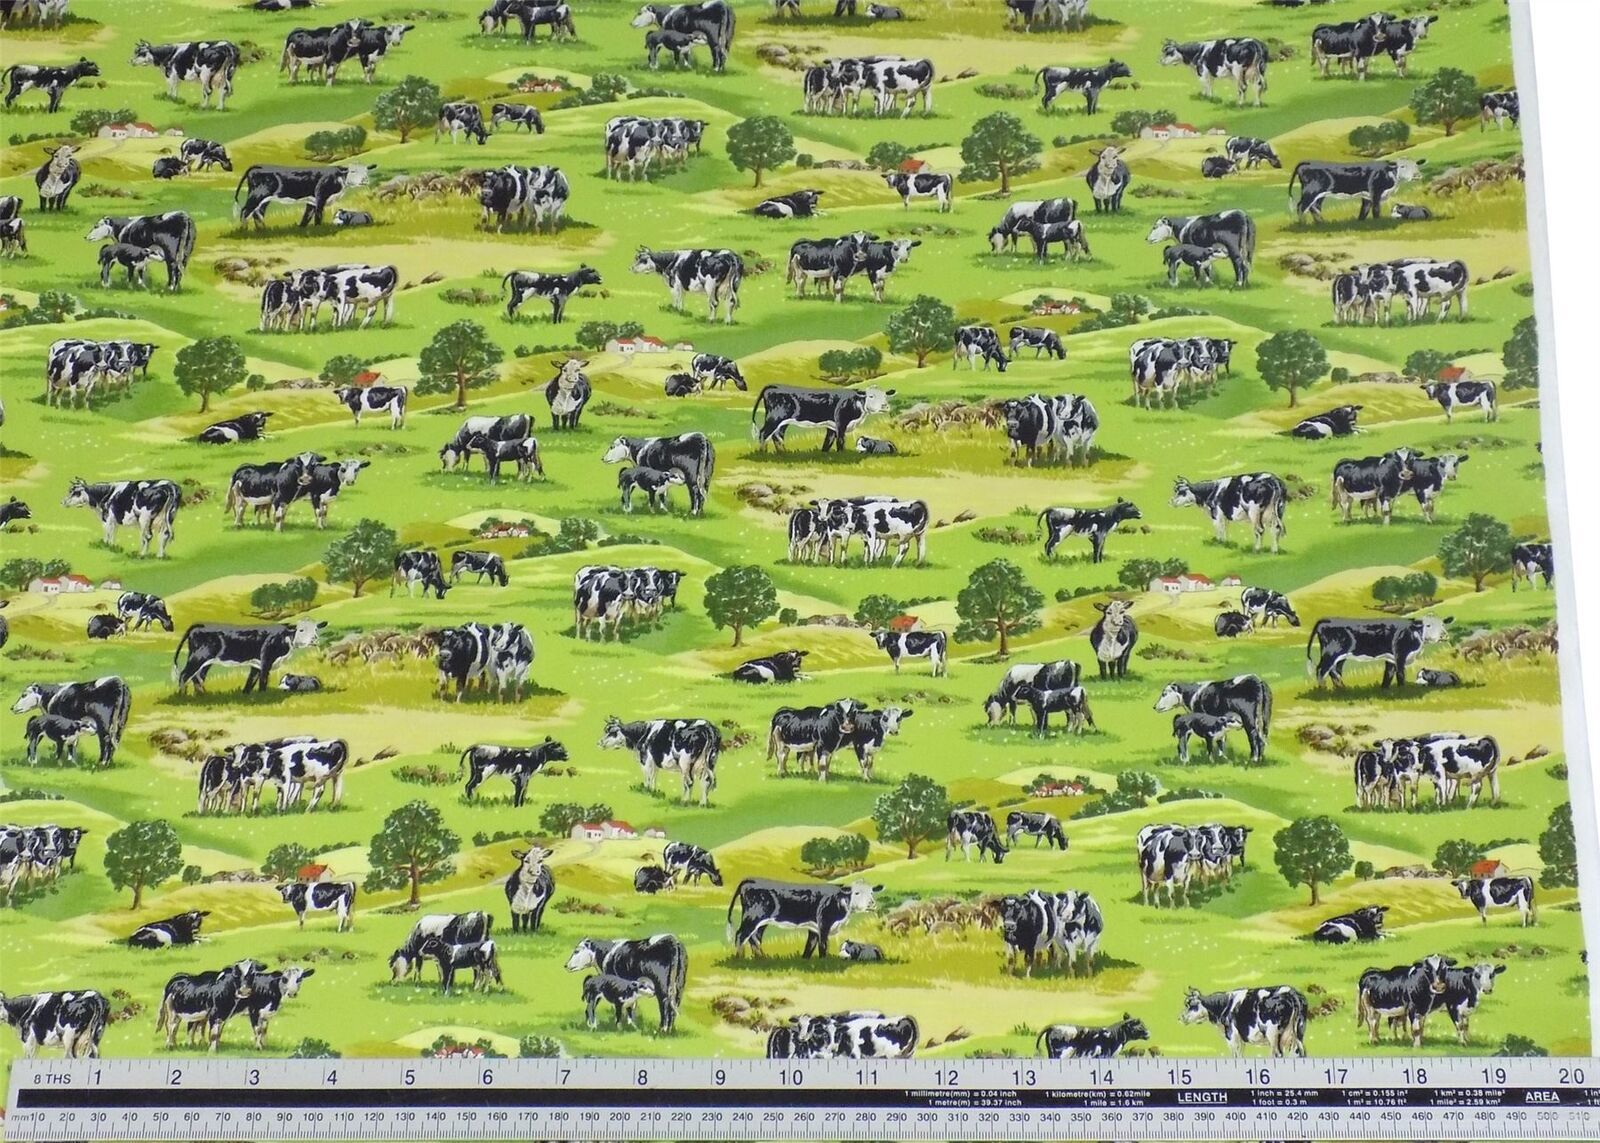 Countryside Cows Grass Green 100% Cotton High Quality Fabric Material 2 Sizes image 3